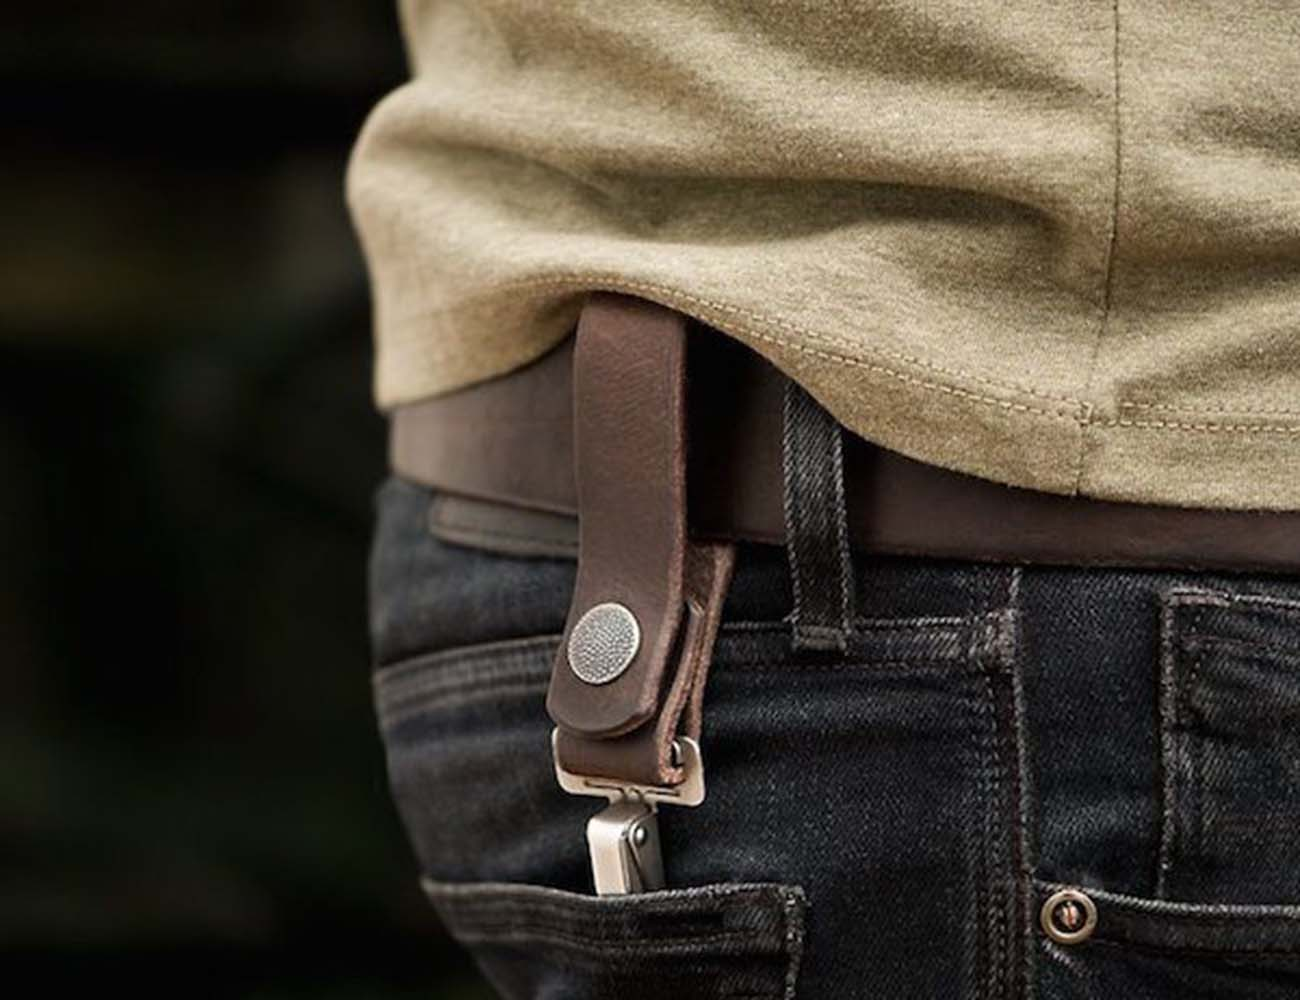 Rugged Belt Loop Keychain by 877 Workshop